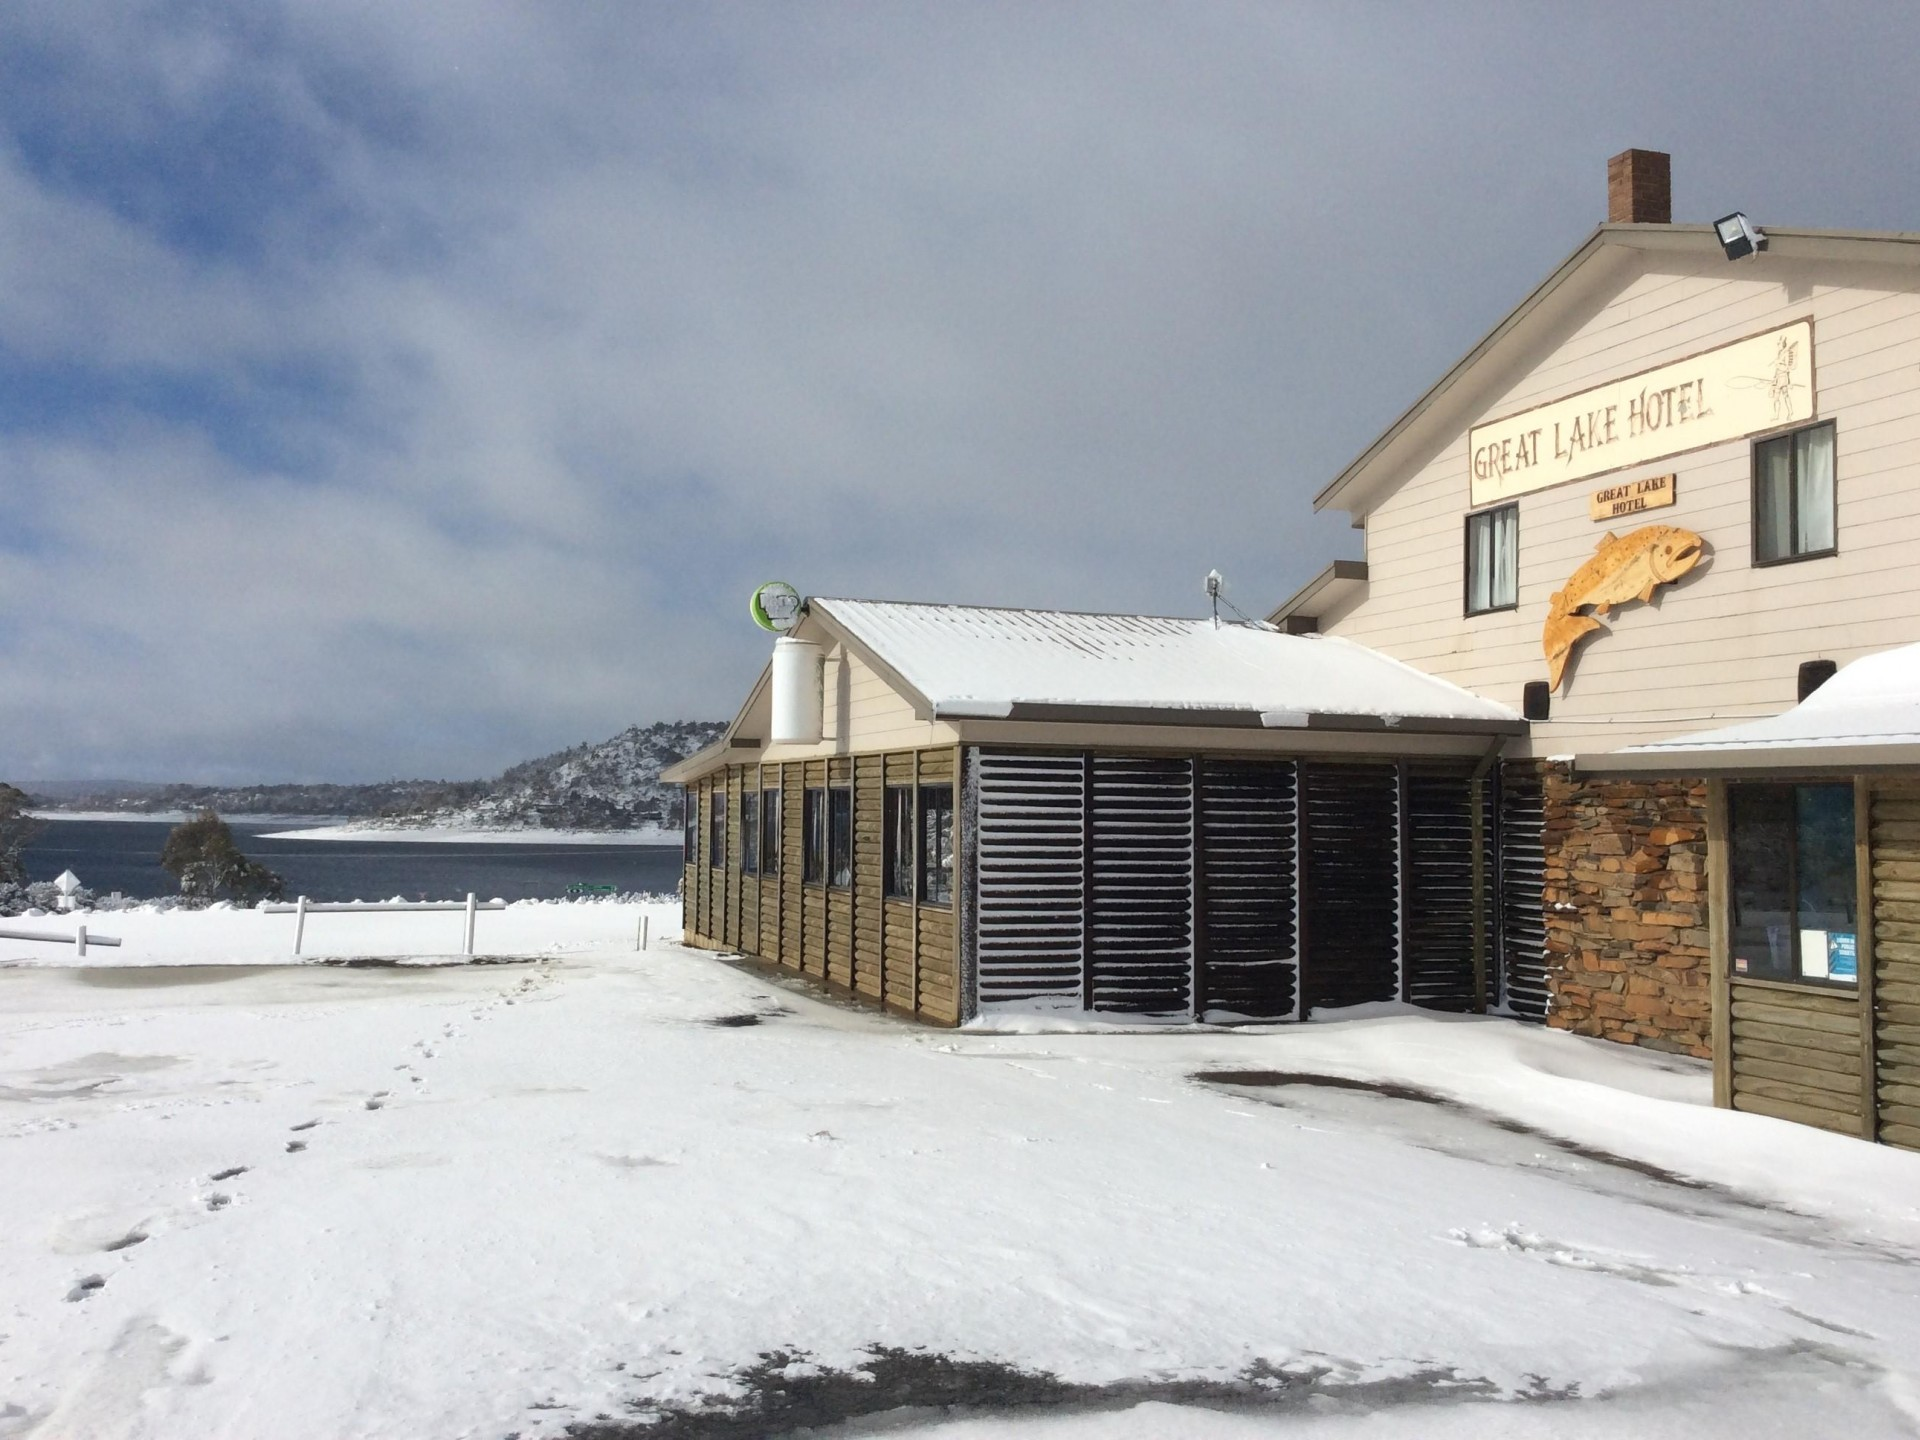 Great Lake Hotel,General Store & Fuel sales, 5 bdr home, million $ turnover